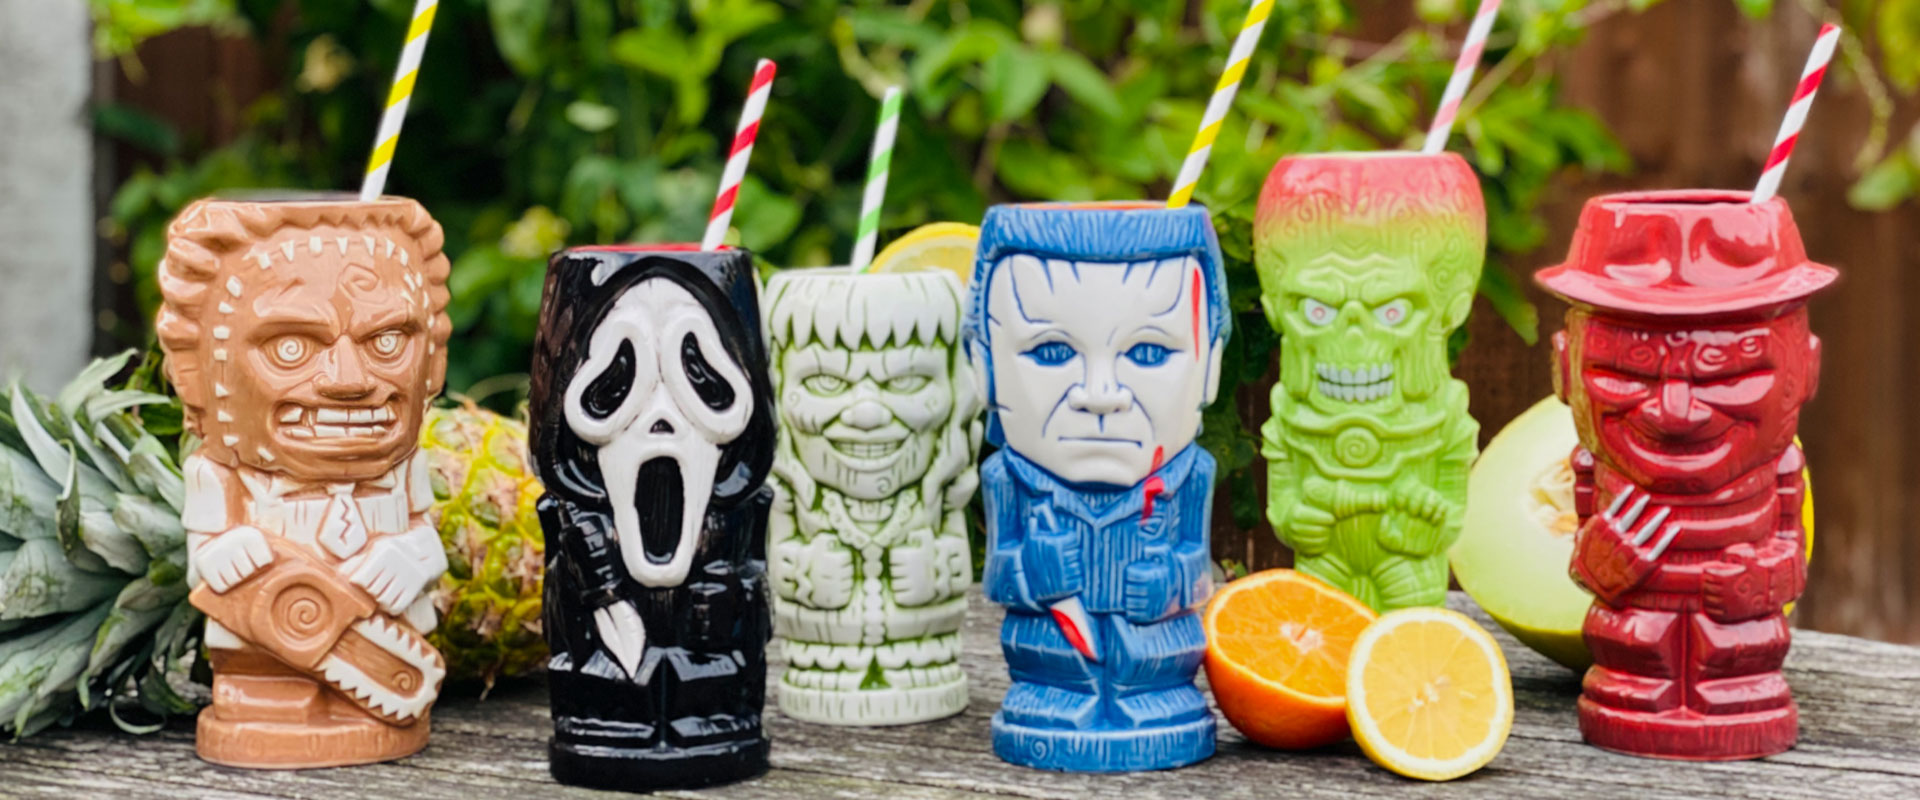 Spine-Tingling Horror-Themed Cocktails Bring Your Geeki Tiki to Life!